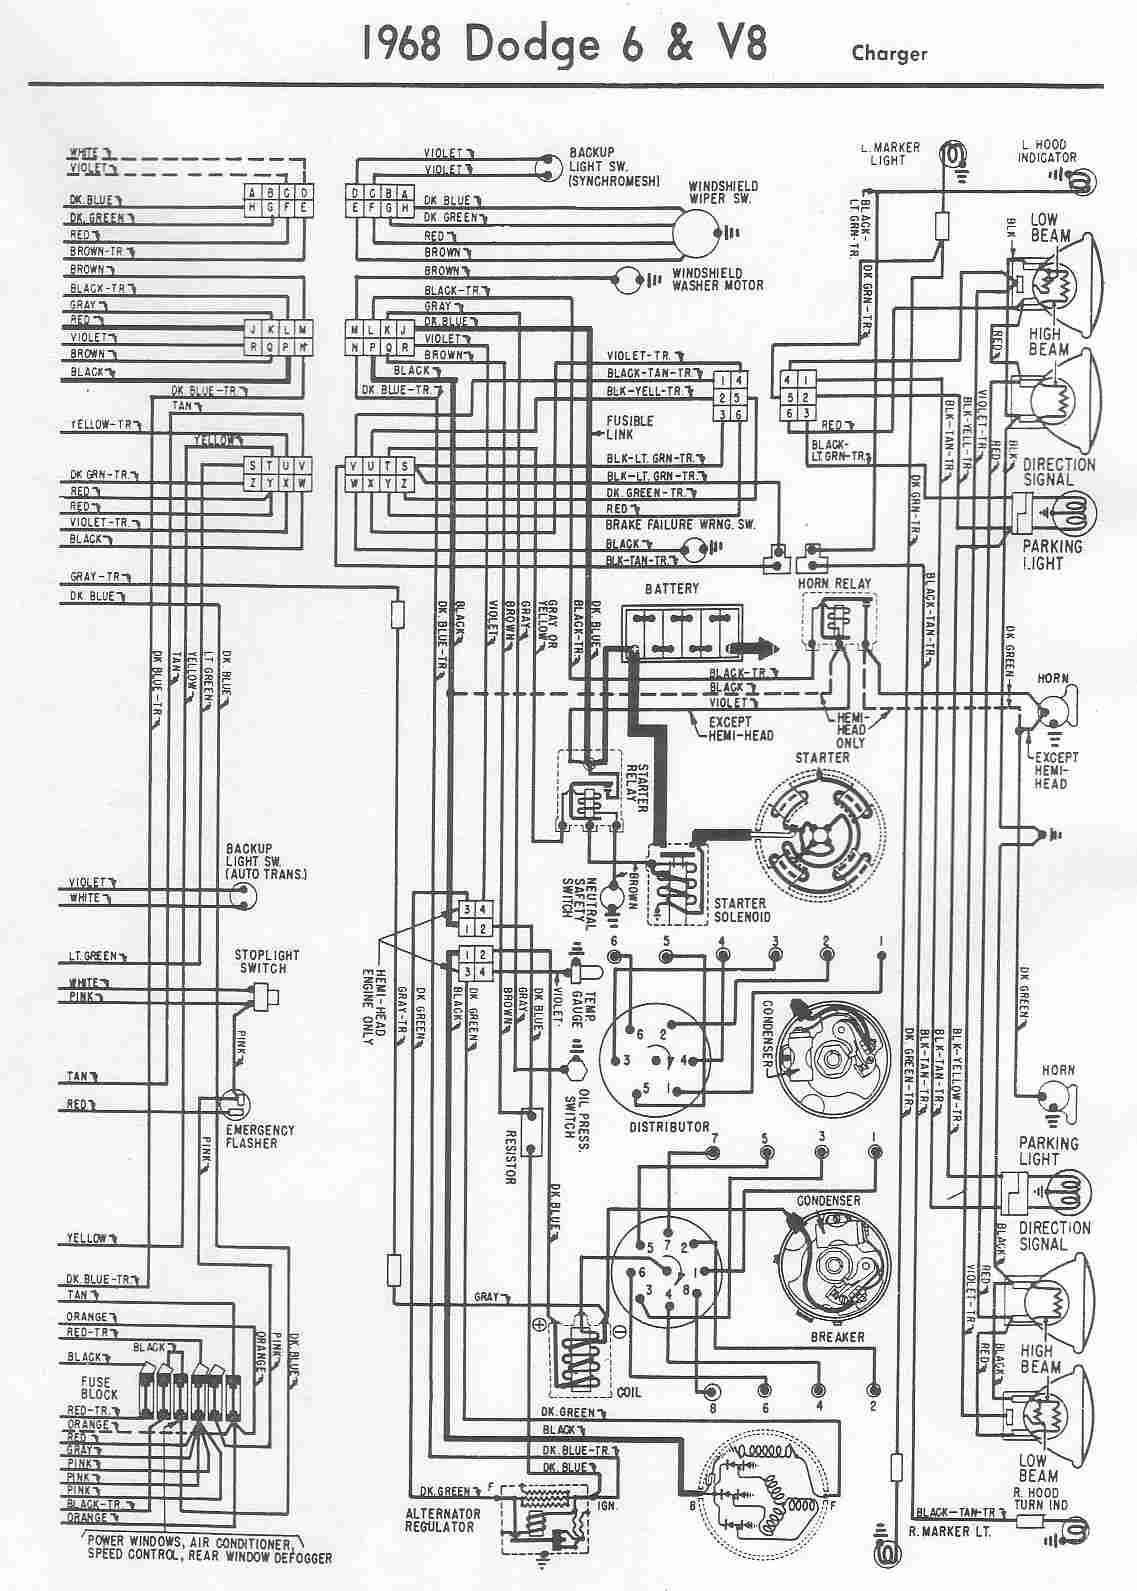 charger electrical wiring diagram of 1968 dodge 6 and v8?t=1508404771 dodge car manuals, wiring diagrams pdf & fault codes 1967 dodge charger wiring diagram at gsmx.co